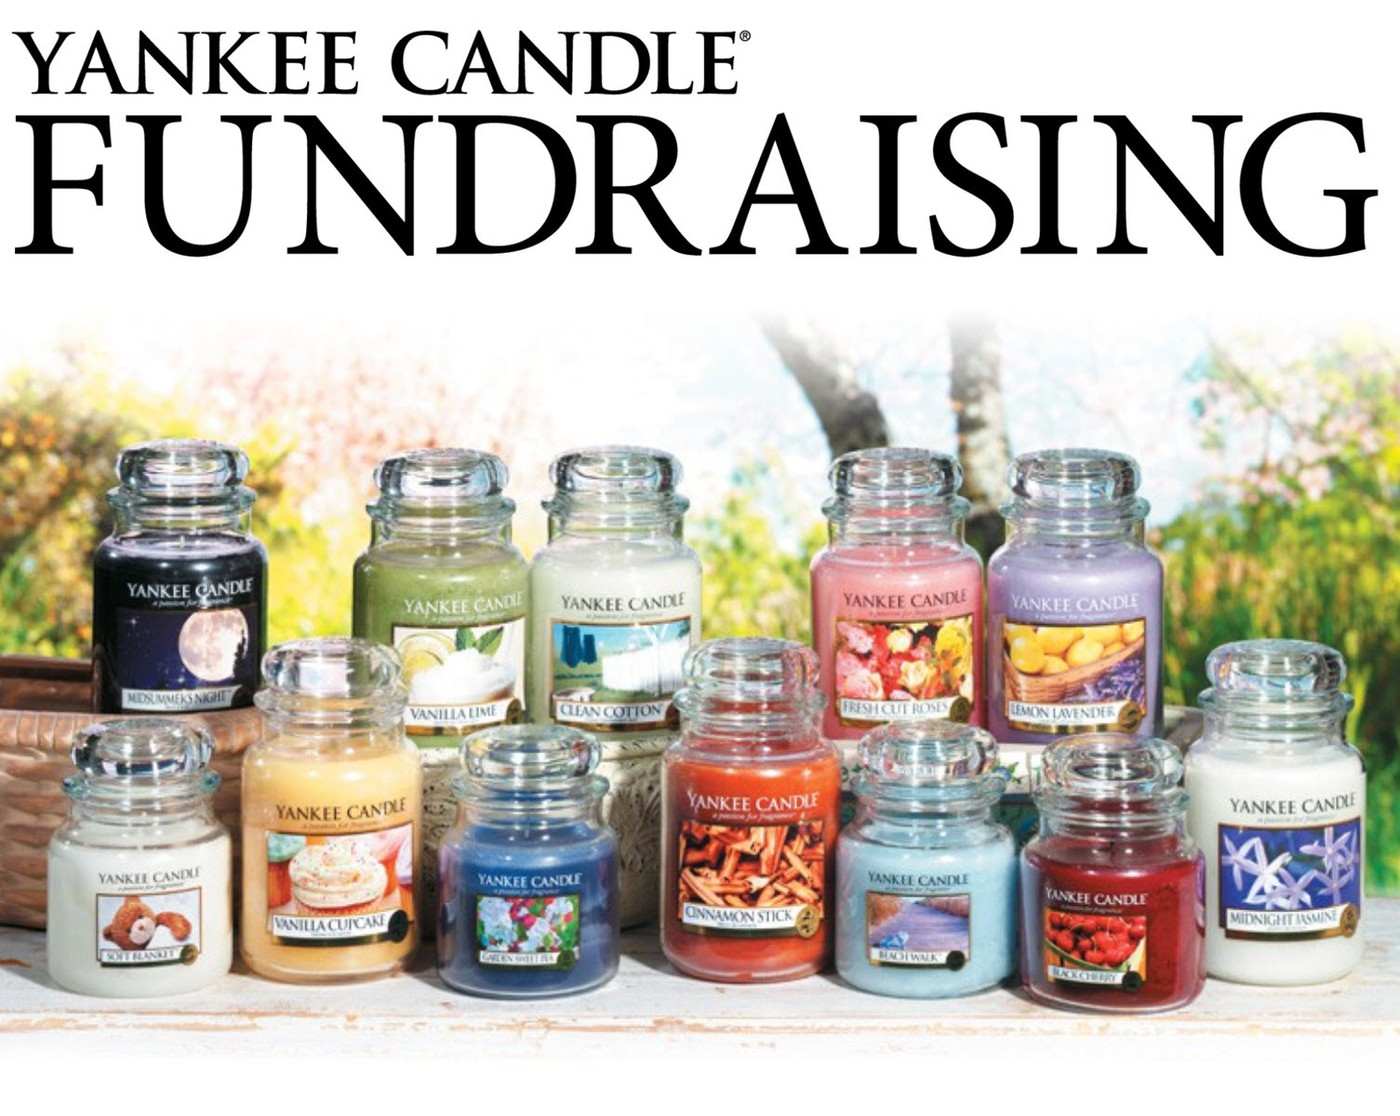 Image result for Yankee Candle fundraising clipart